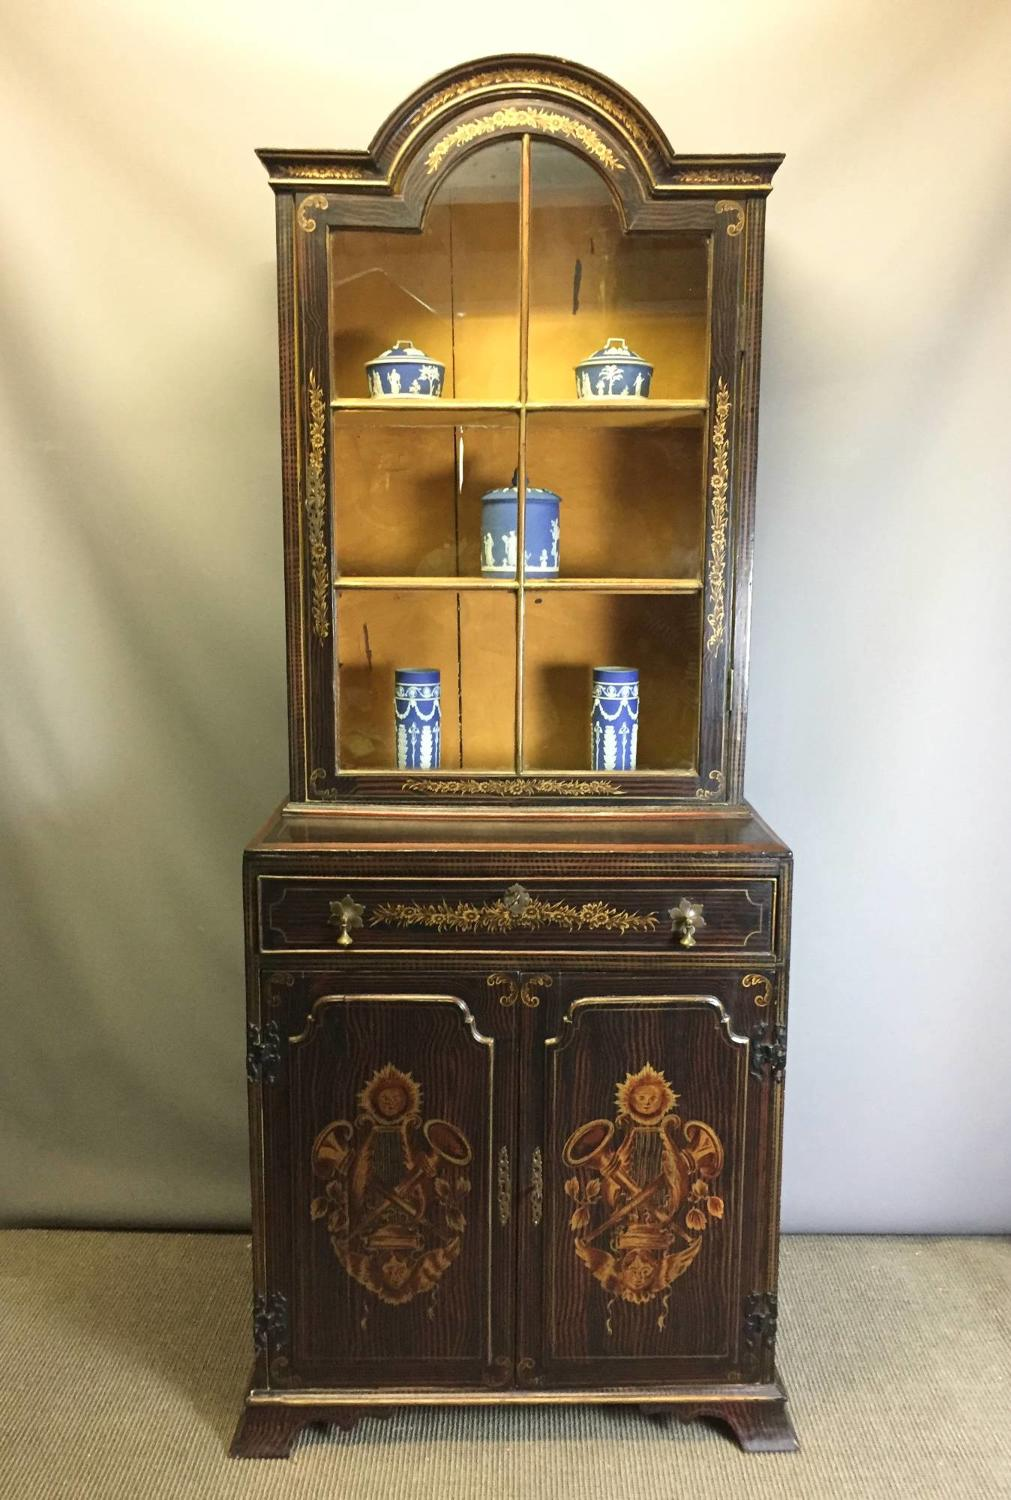 Decorative Faux Rosewood & Gilt Painted Cabinet